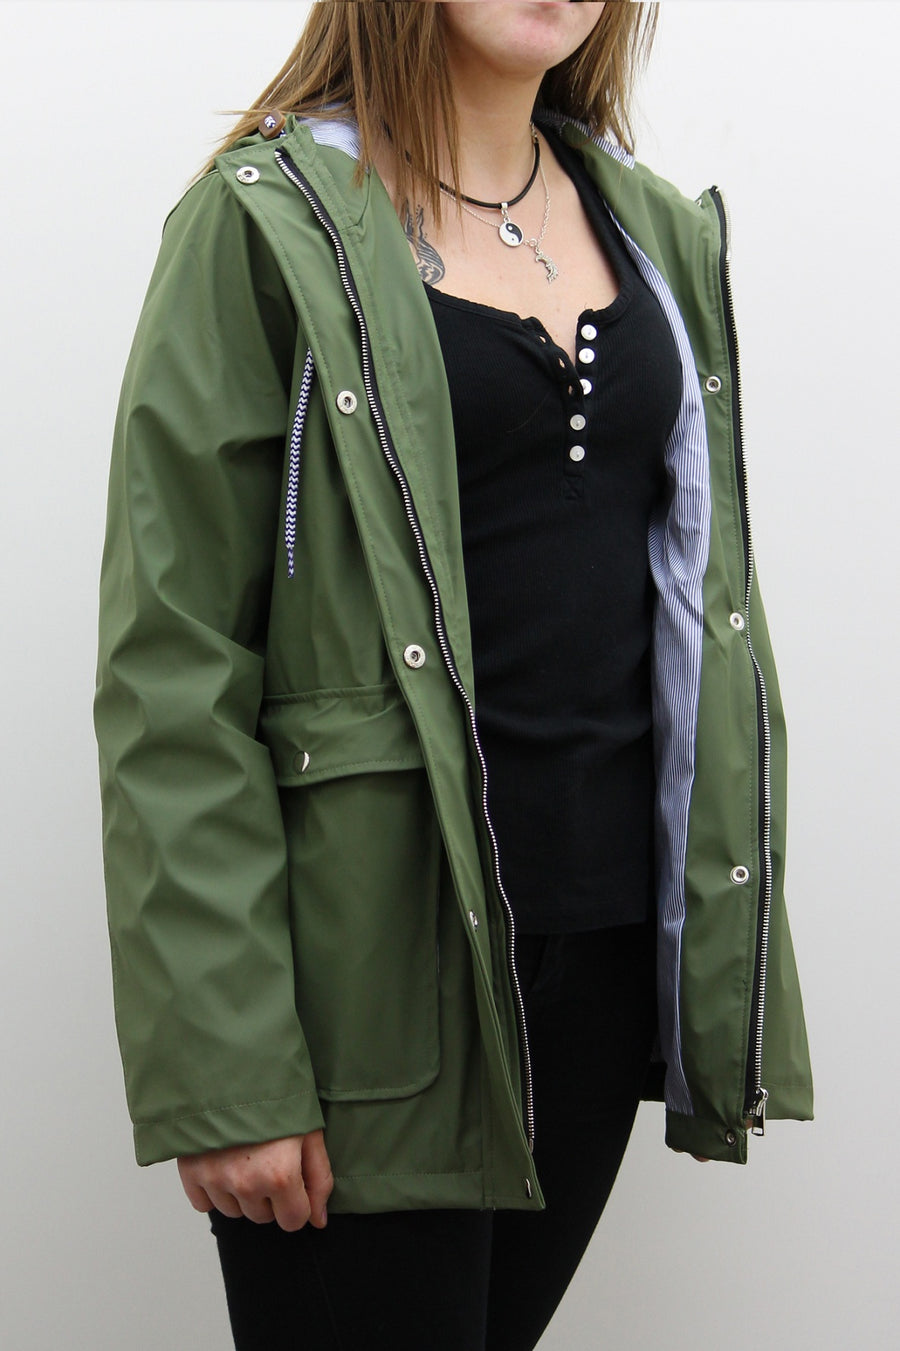 Khaki Green Waterproof Hooded Festival Rain Mac coat - Lola